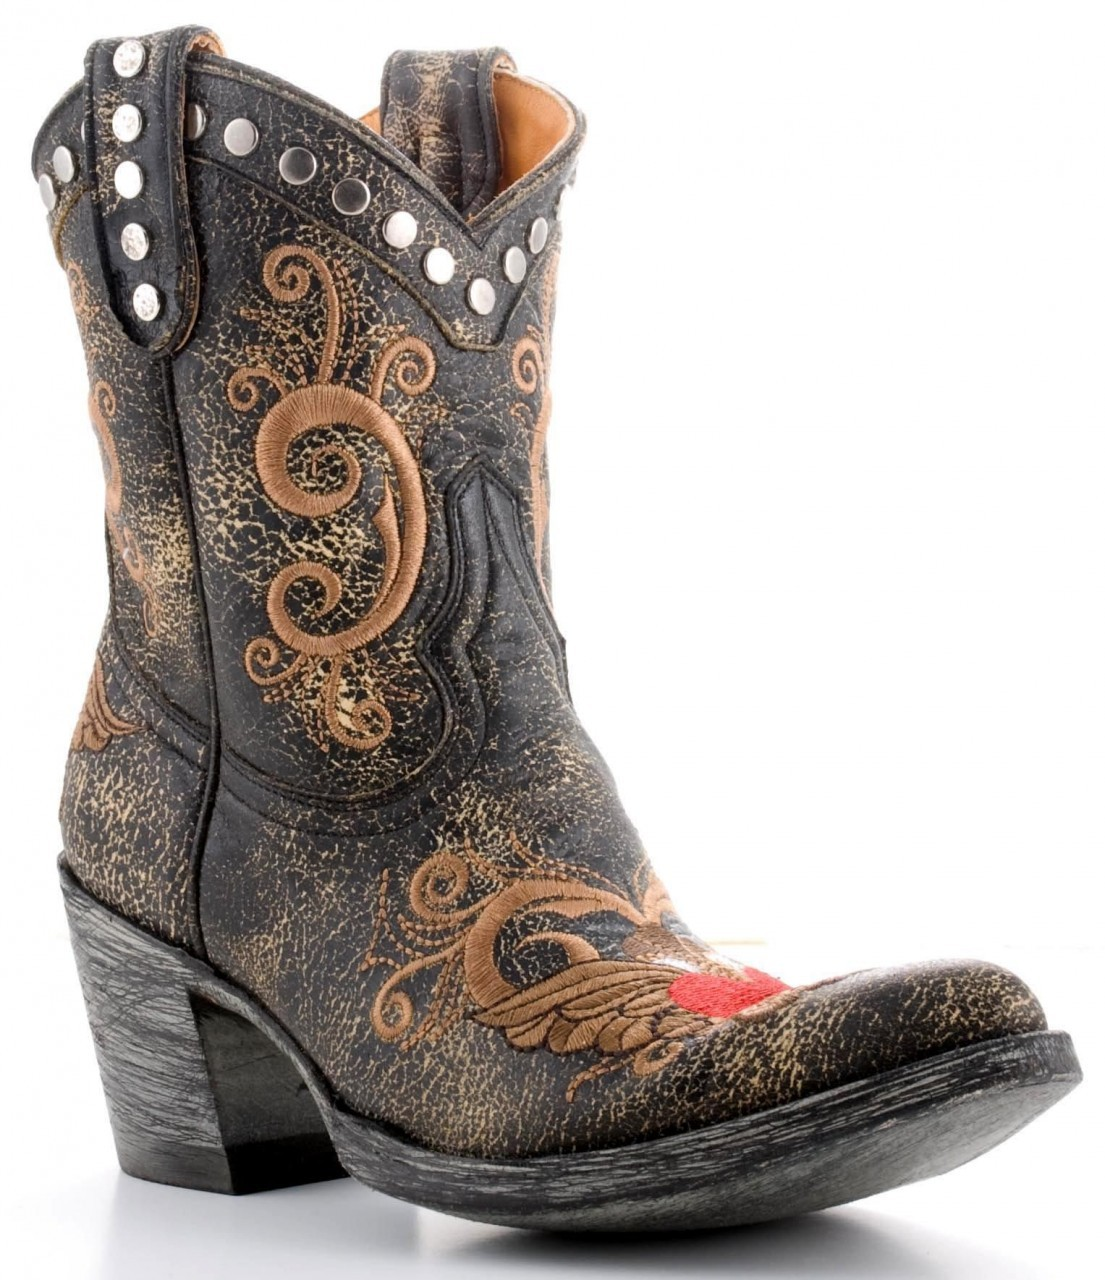 Space Cowboy Boots – Old Gringo Giveaway